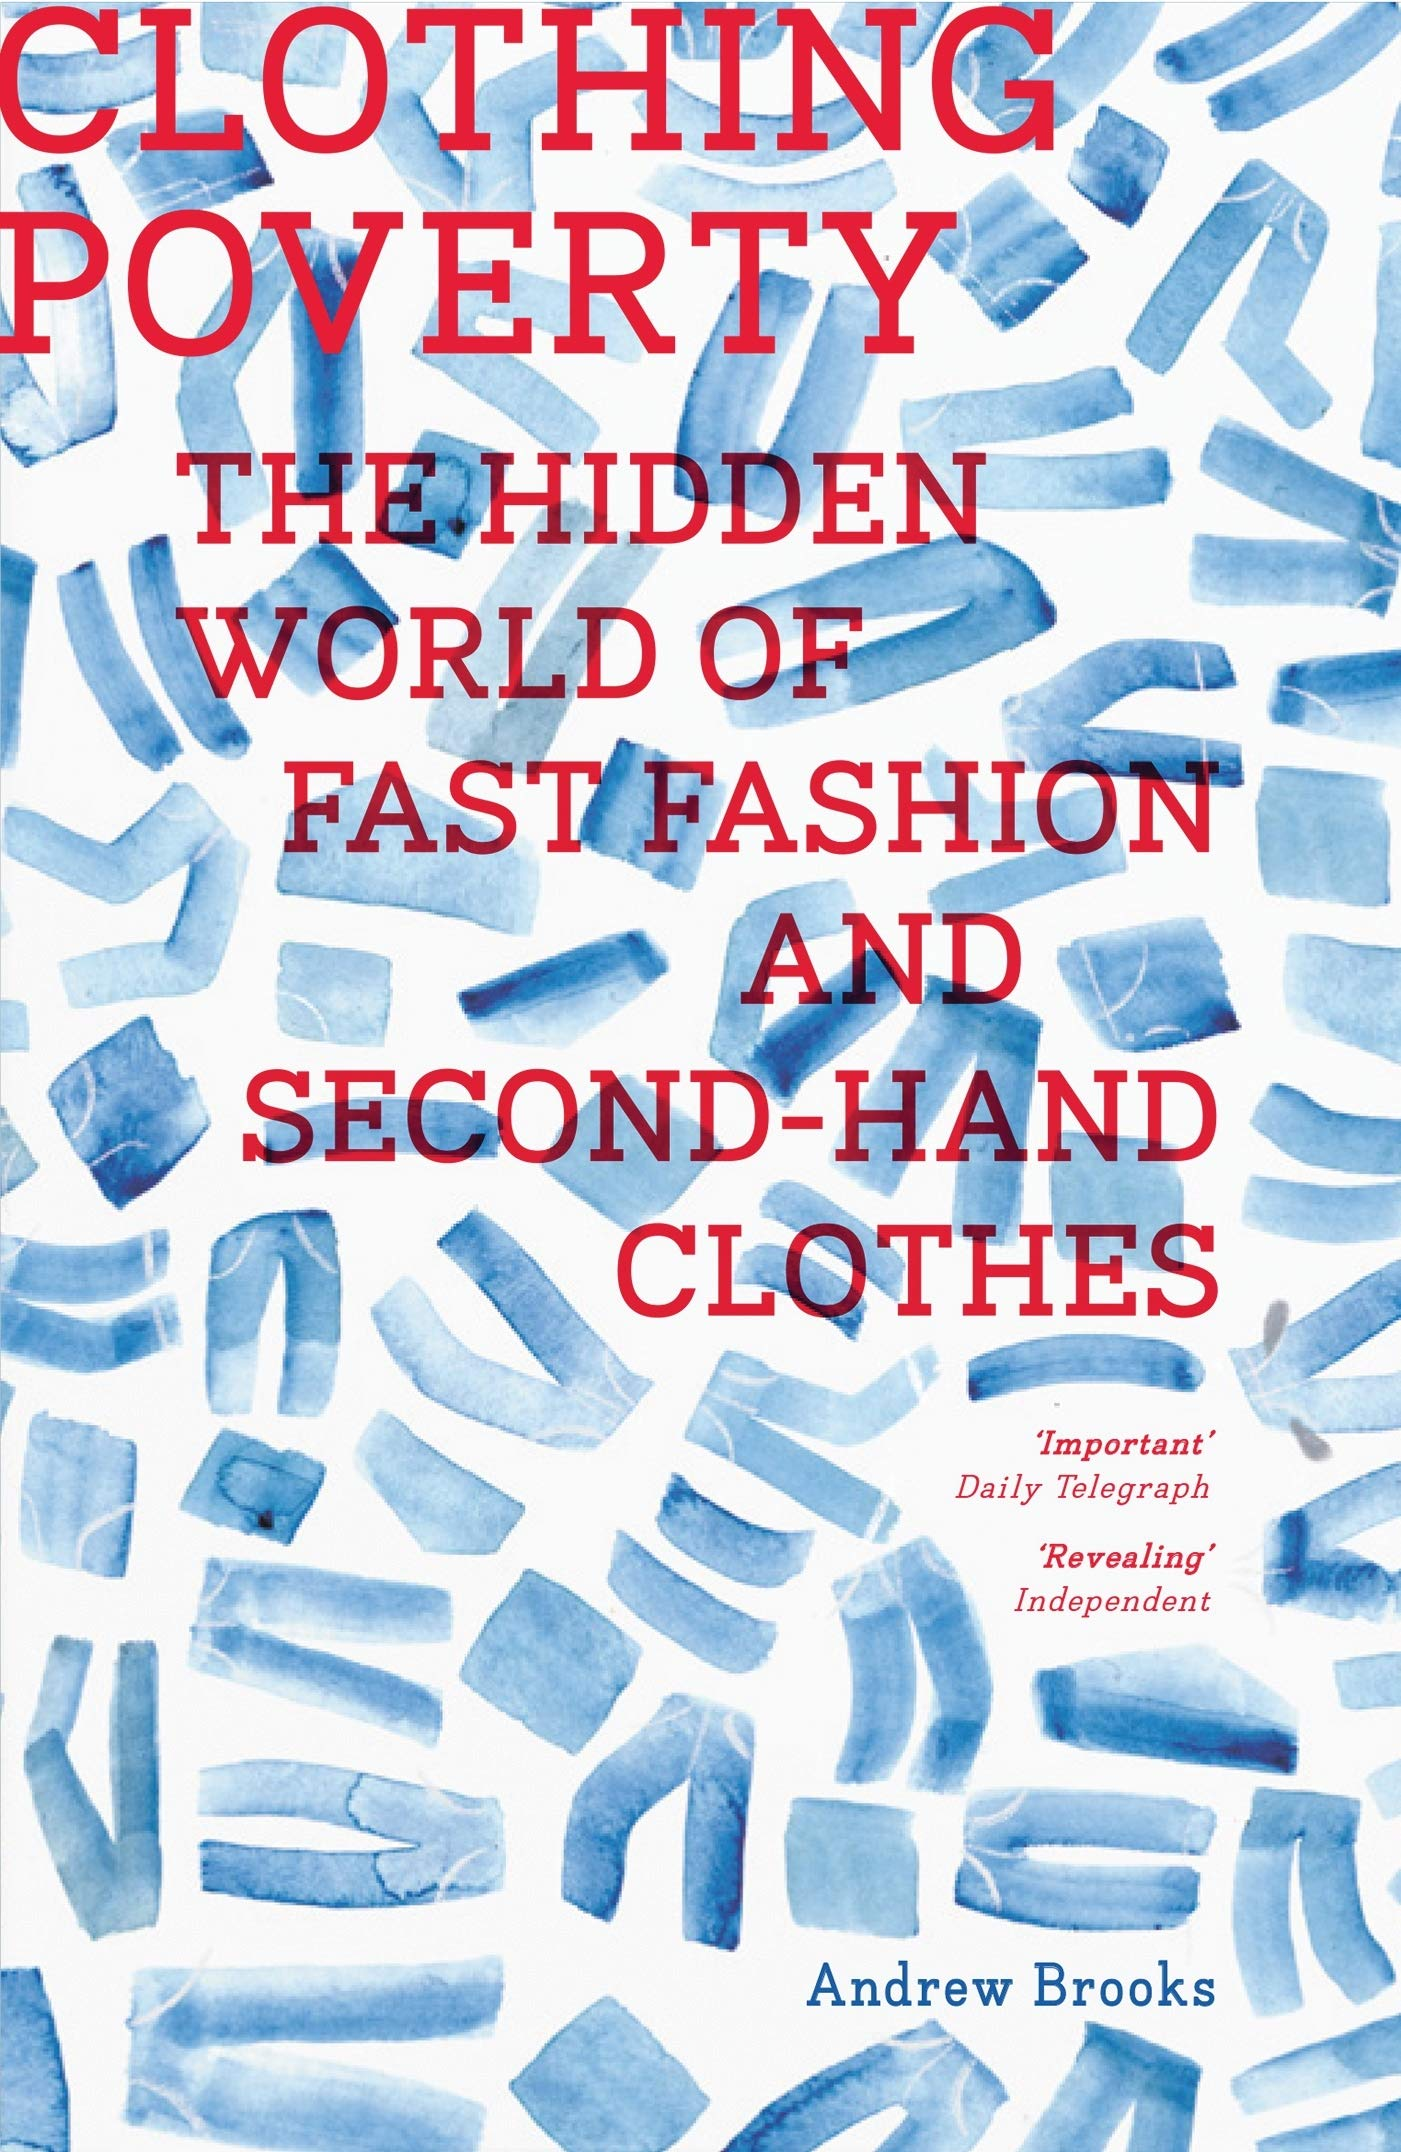 Clothing Poverty: The Hidden World of Fast Fashion and Second-Hand Clothes:  Amazon.co.uk: Andrew Brooks: 9781783600670: Books